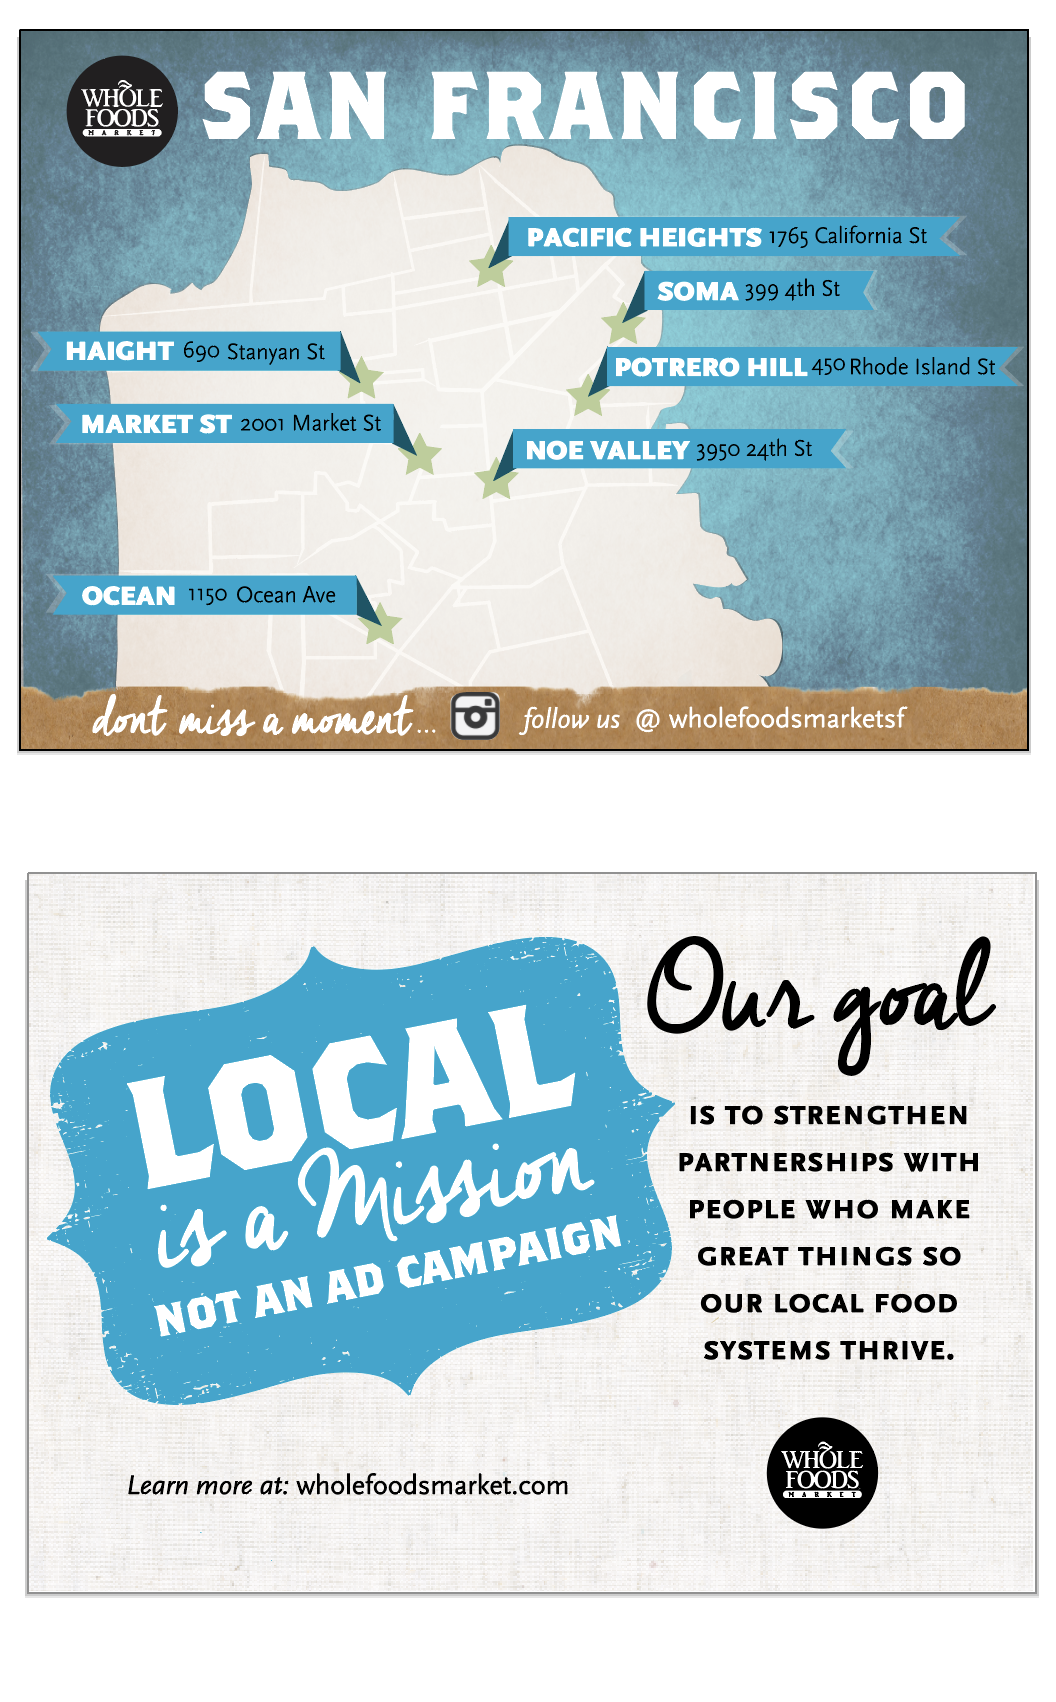 client: Whole Foods Market - city wide, direct mailer for new local campaign